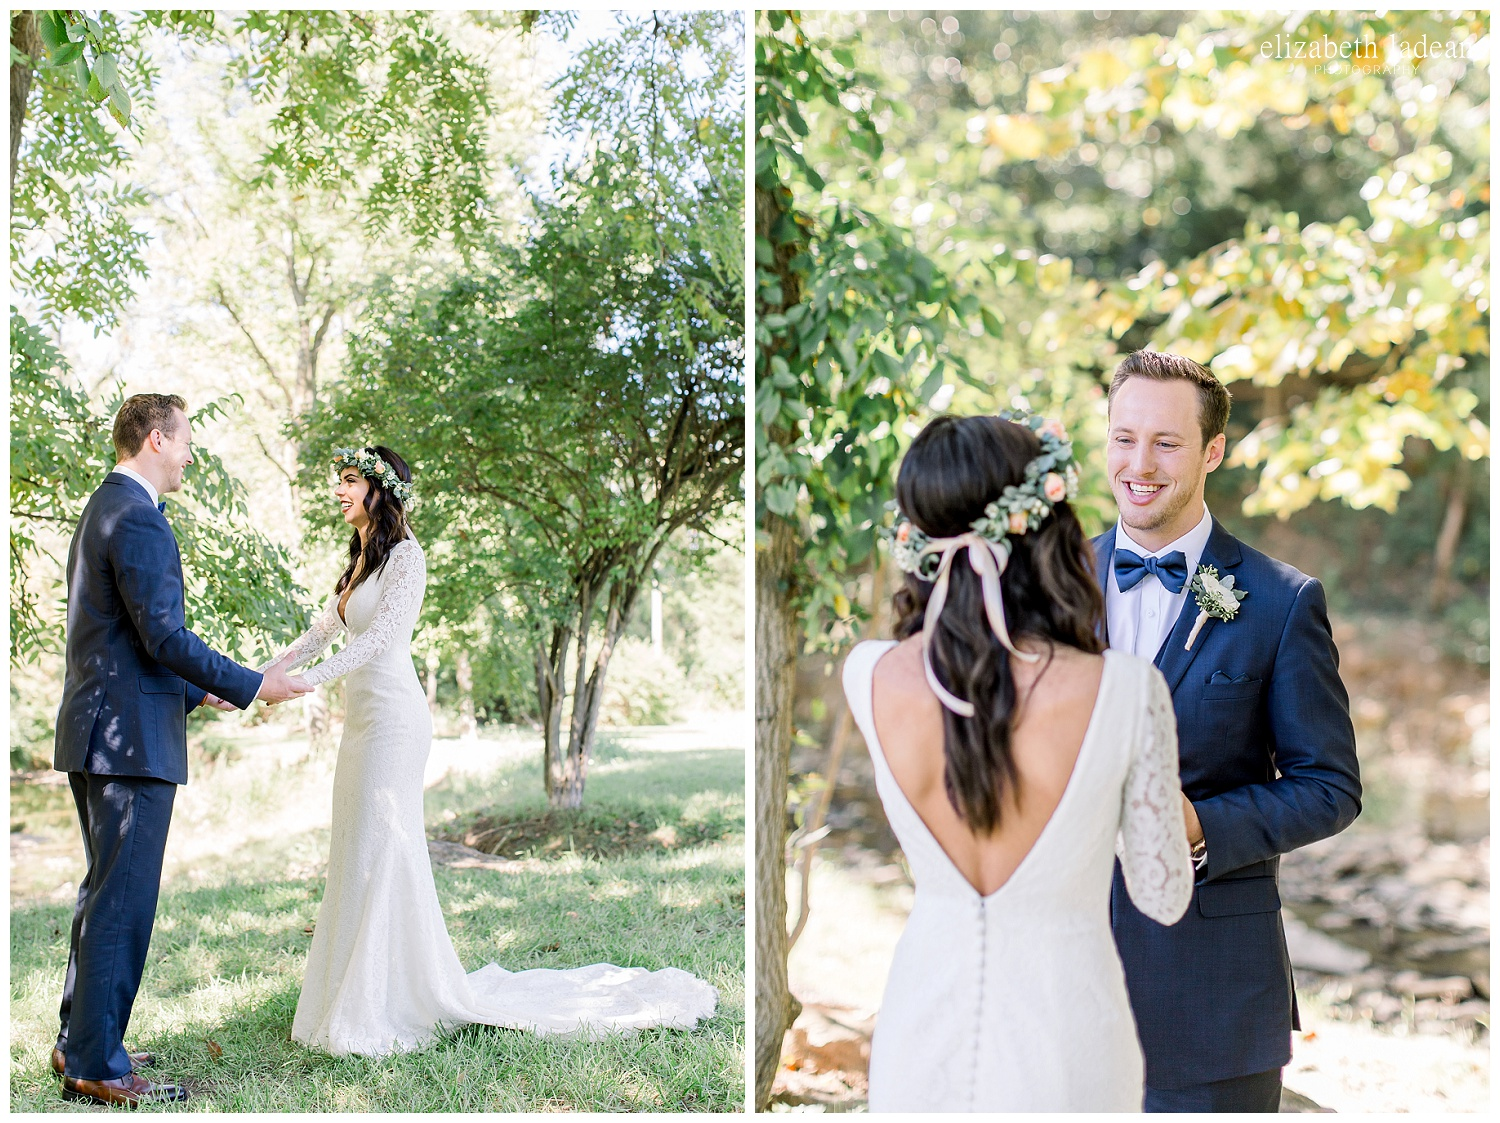 Willow-Creek-Blush-and-Blues-Outdoor-Wedding-Photography-S+Z2018-elizabeth-ladean-photography-photo_0529.jpg